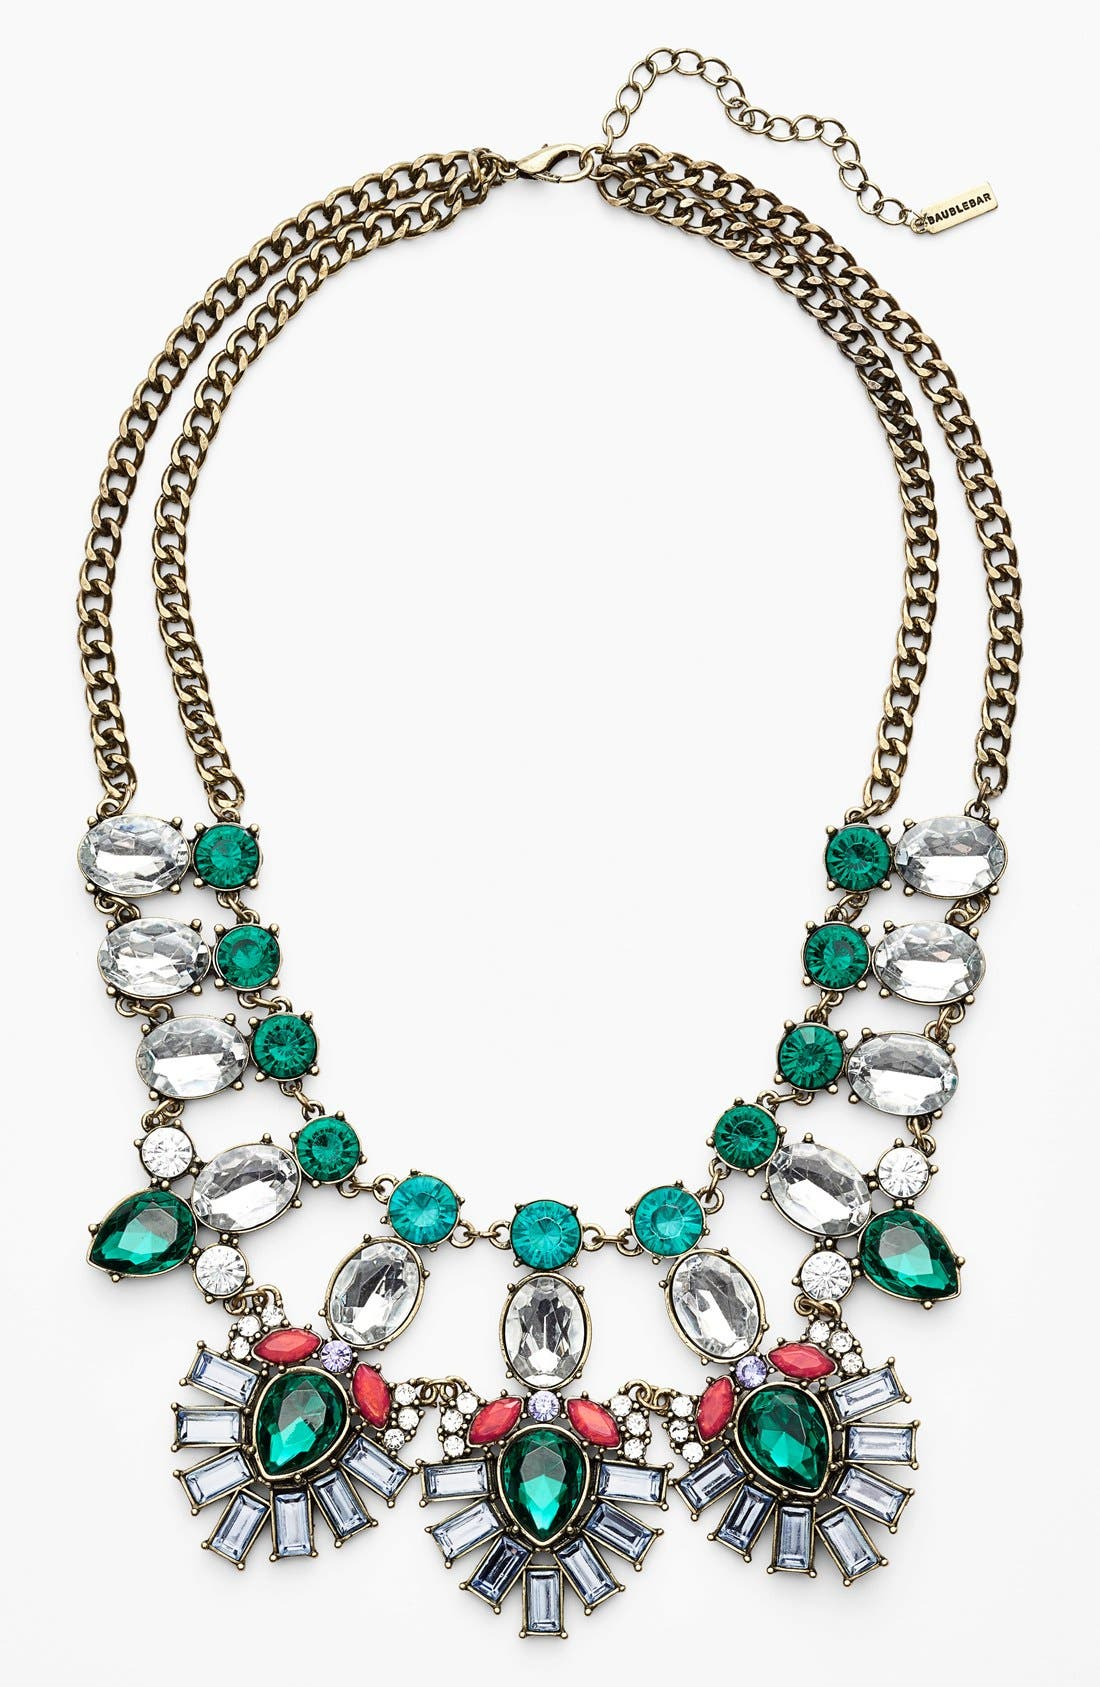 Main Image - BaubleBar 'Drama' Mixed Stone Statement Necklace (Nordstrom Exclusive)